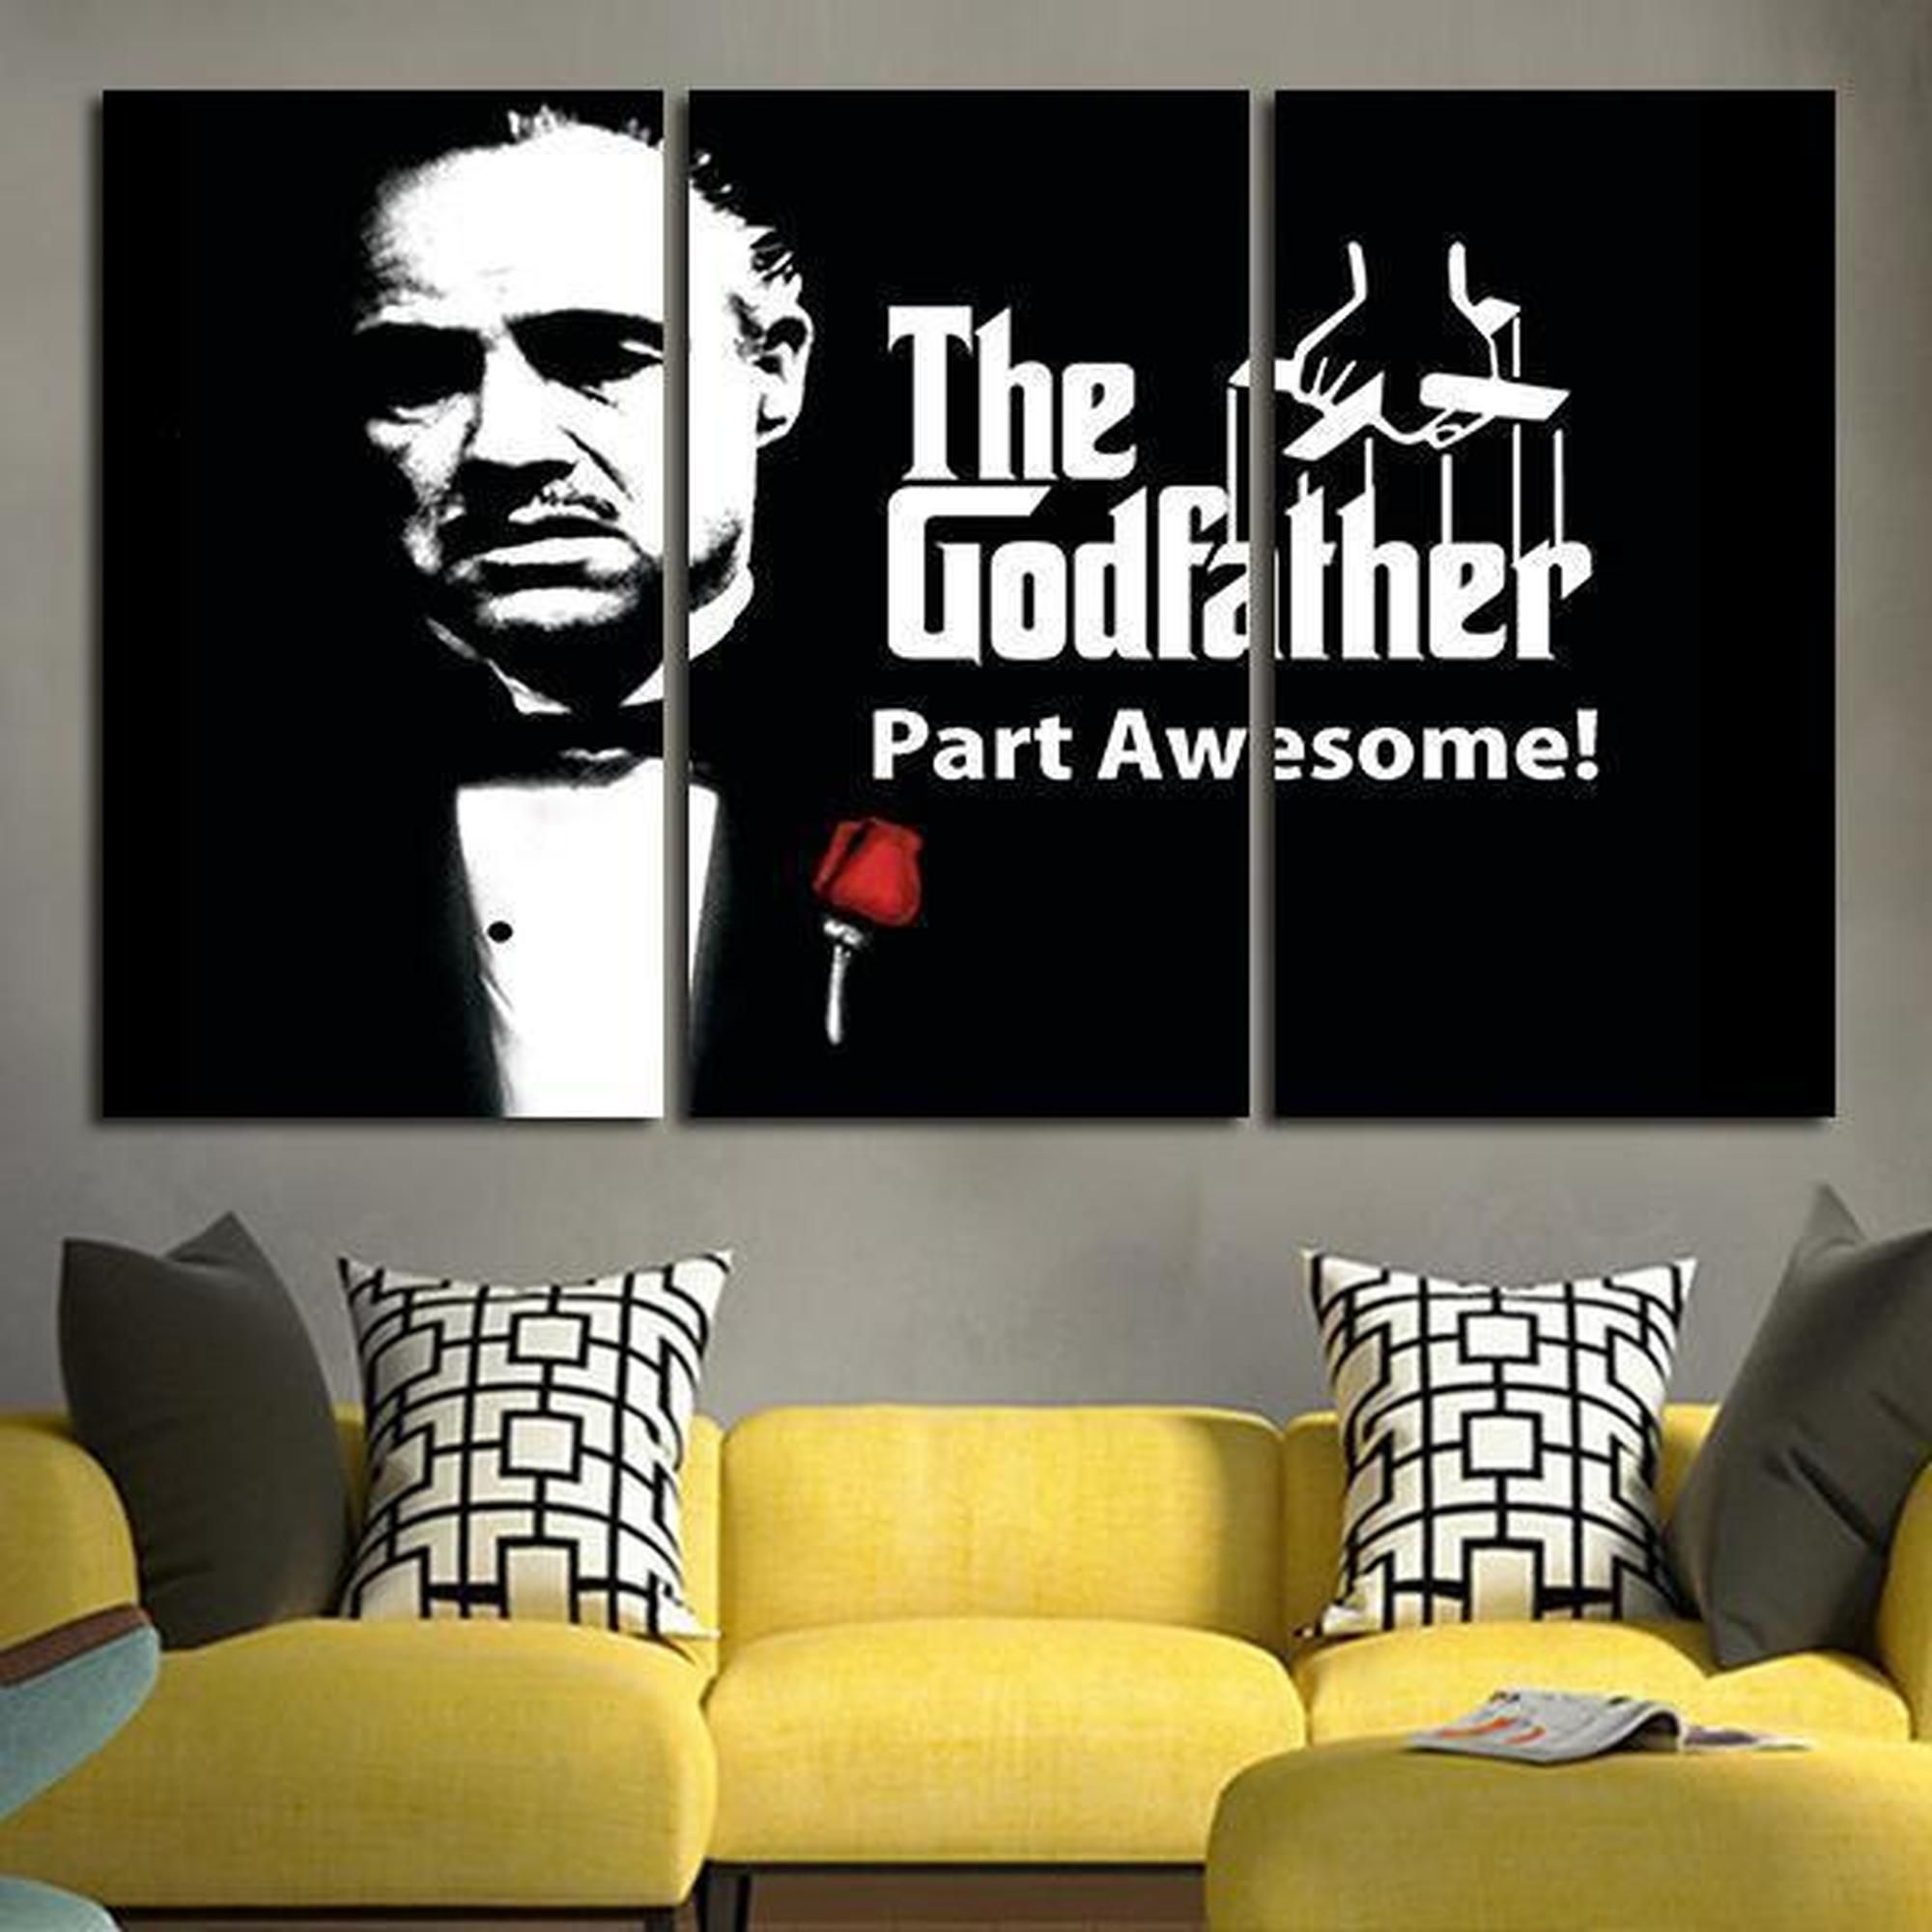 Godfather Movie Modern Wall Art Deco Canvas 3 Panels